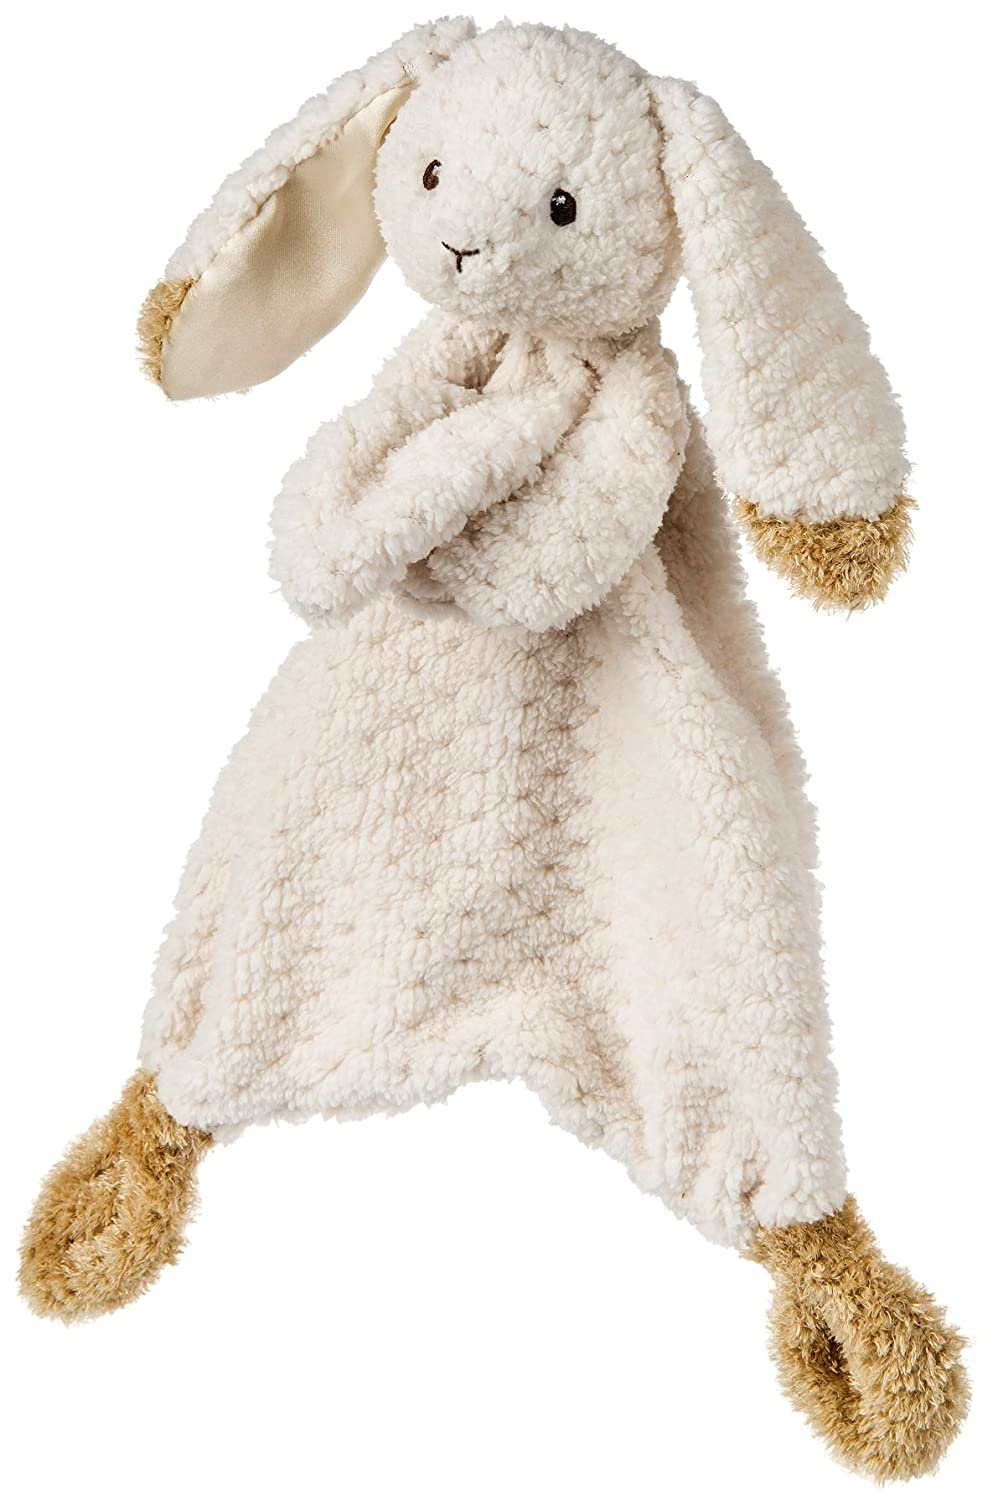 mary-meyer-oatmeal-bunny-lovey-blanket by mary-meyer